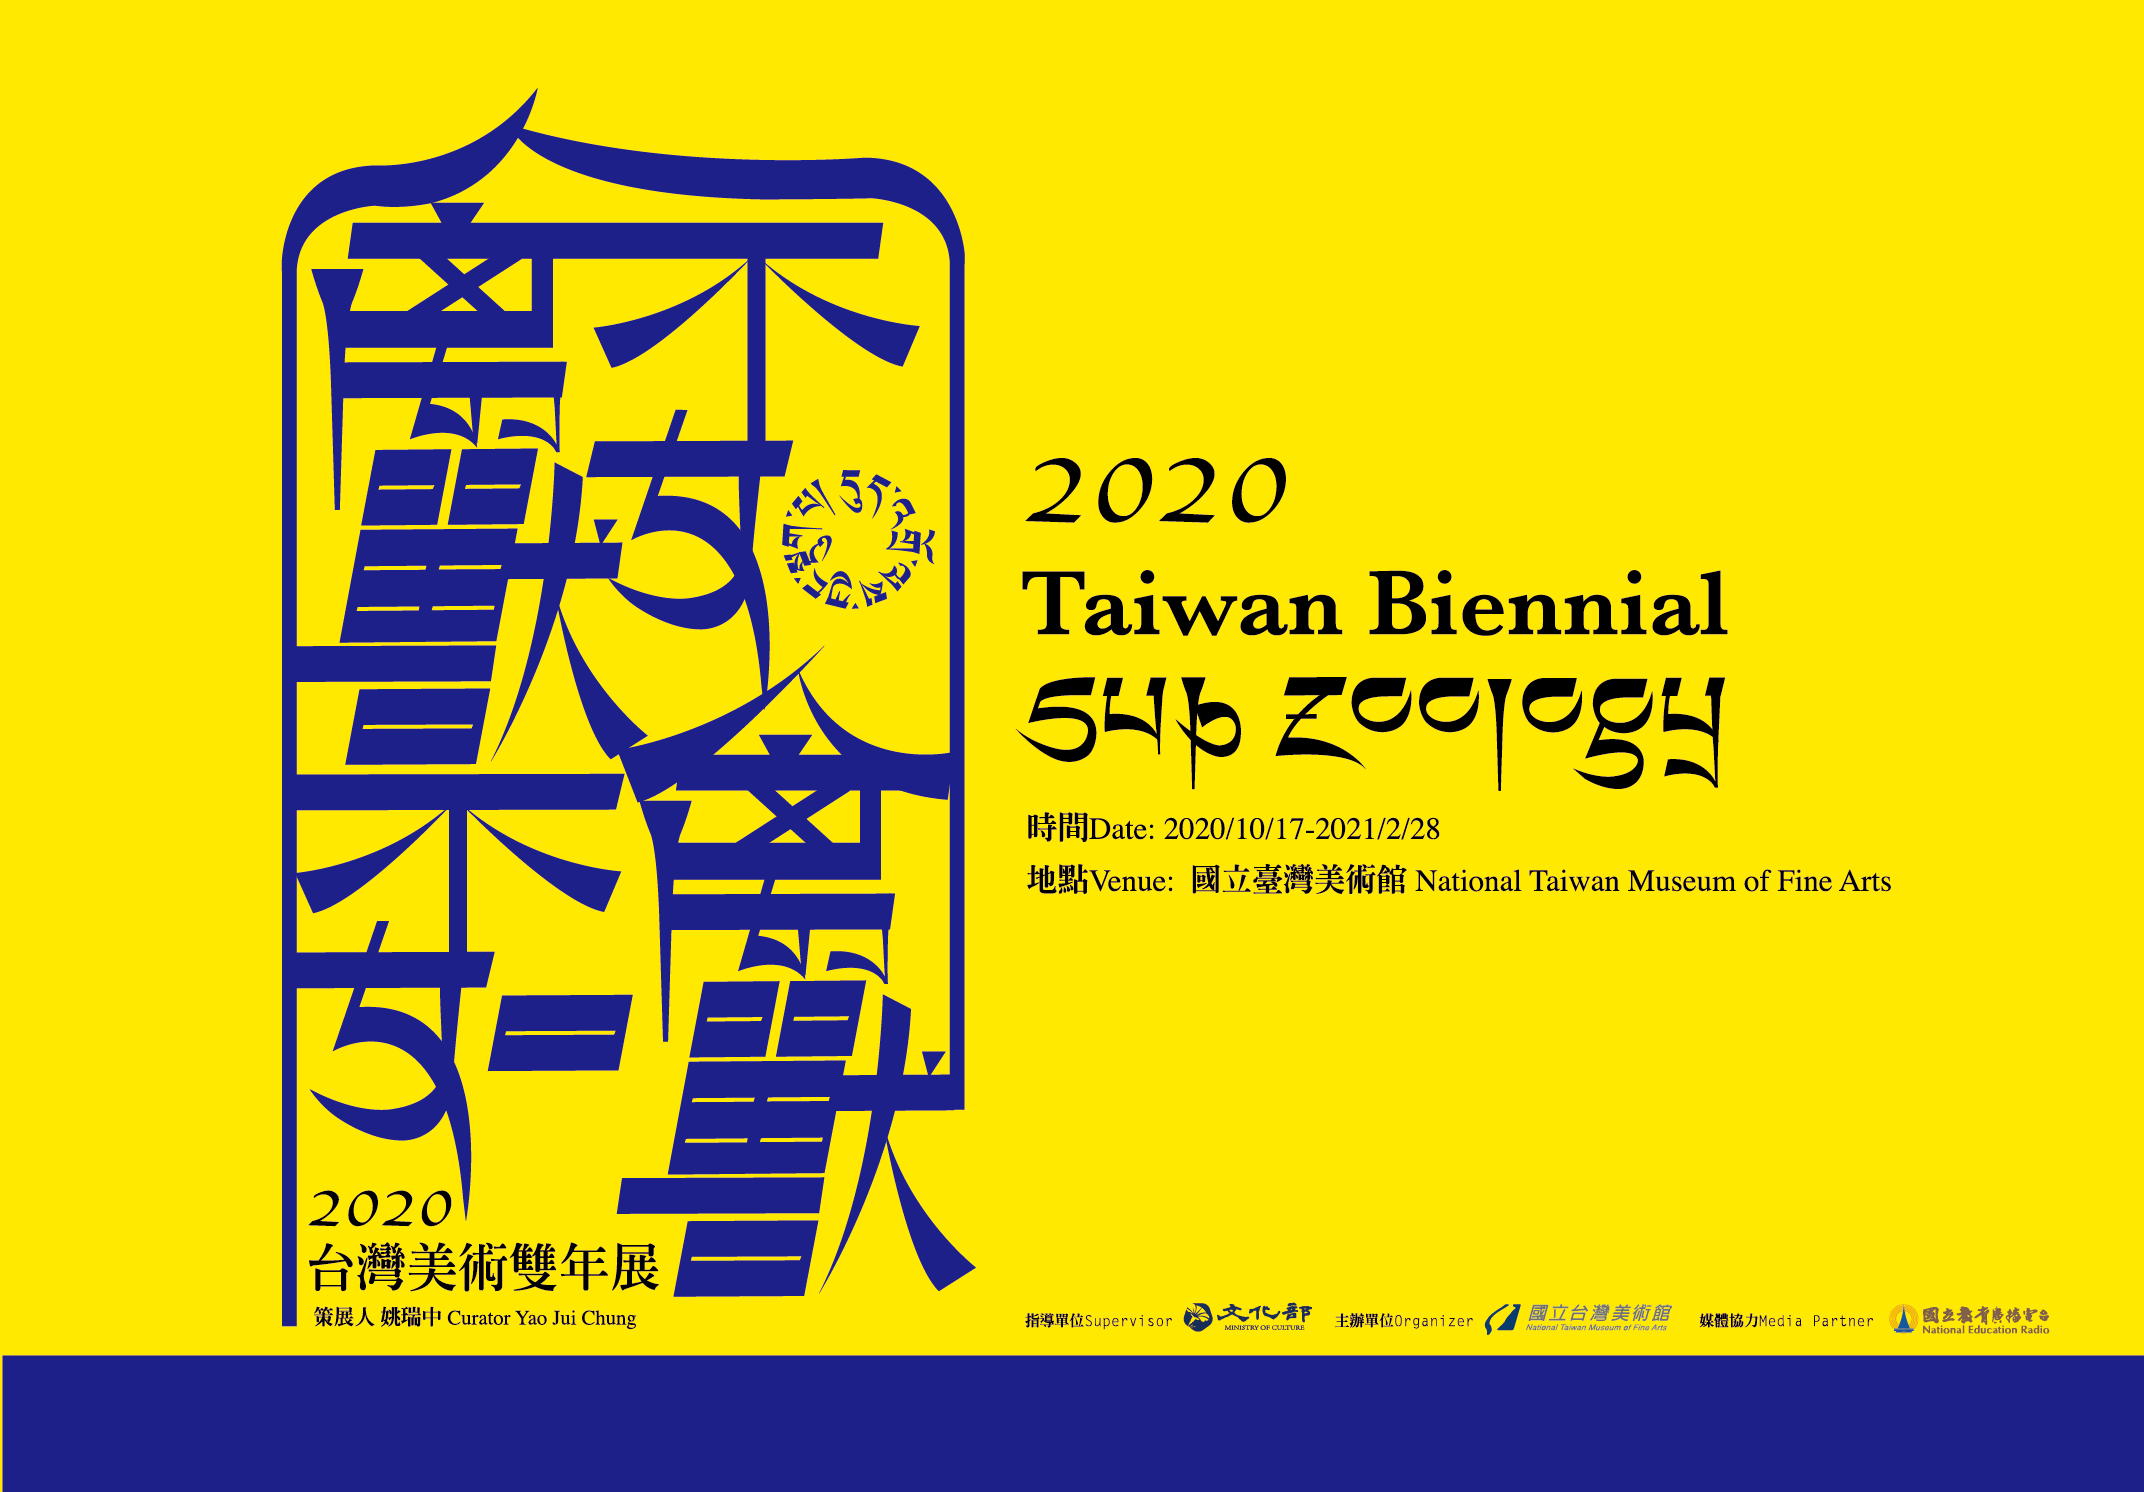 2020 Taiwan Biennial 'Subzoology' adopts human-animal relationship as main theme